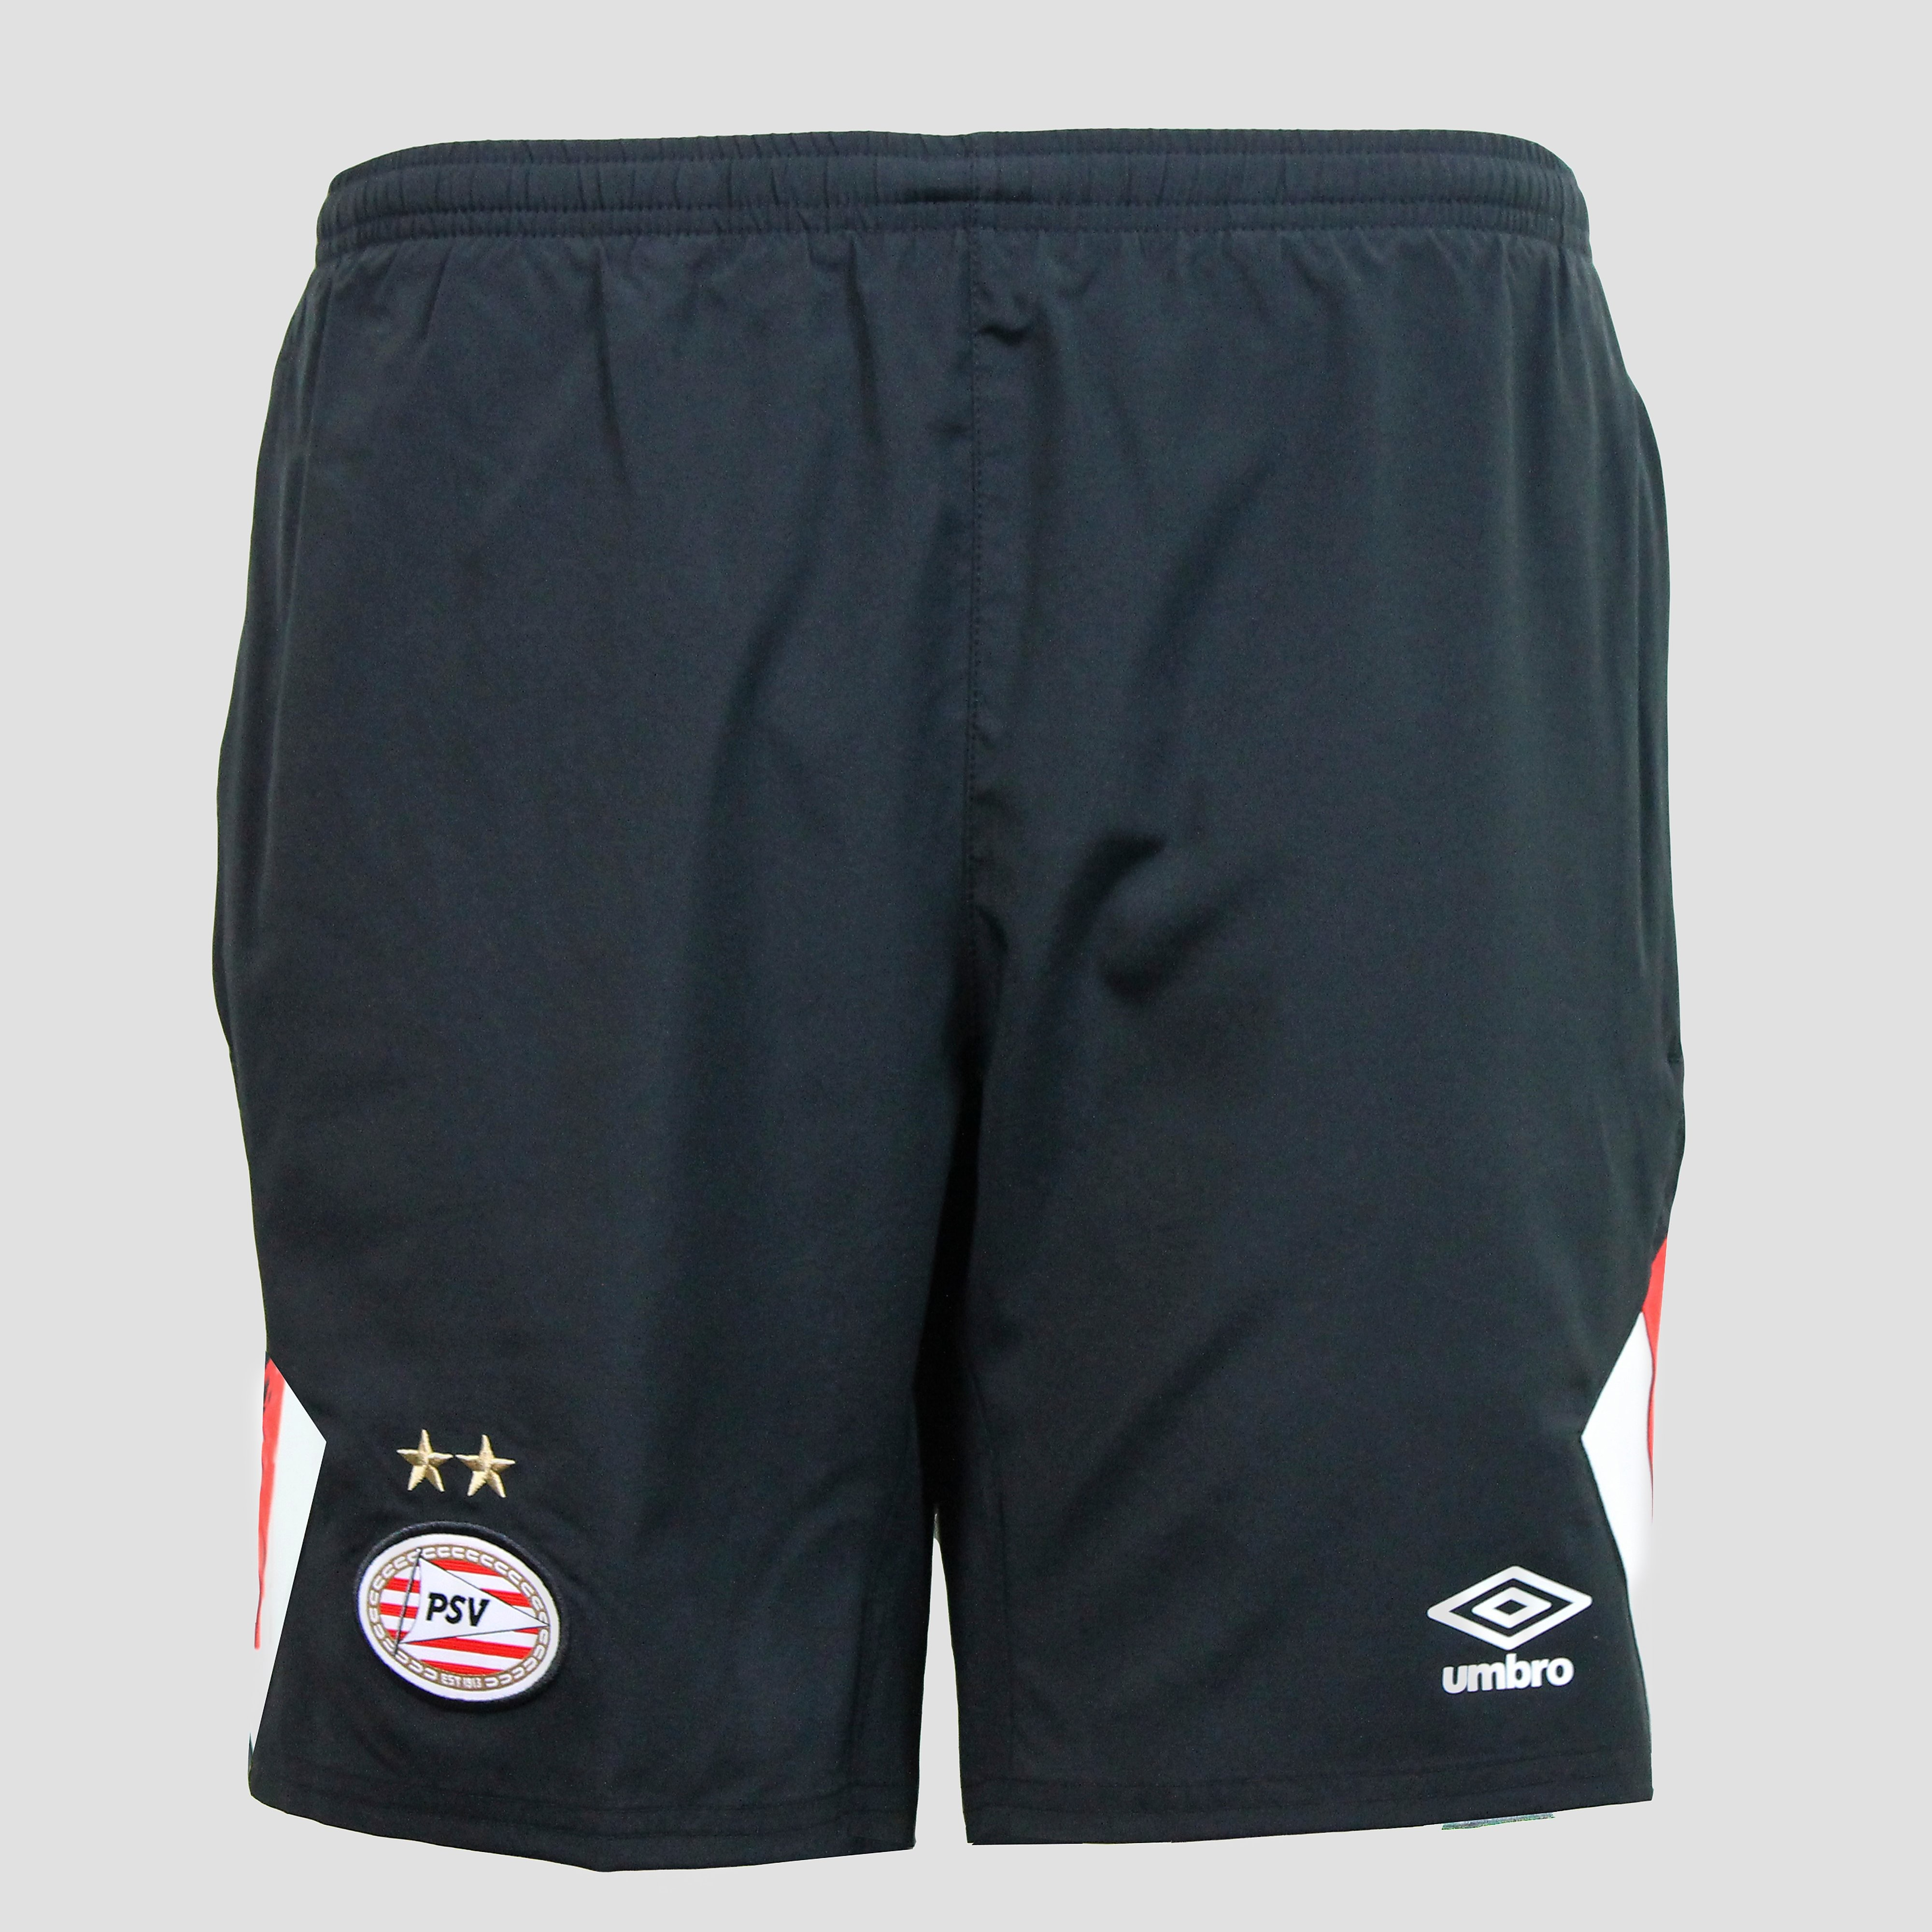 UMBRO PSV TRAININGSSHORT ZWART HEREN